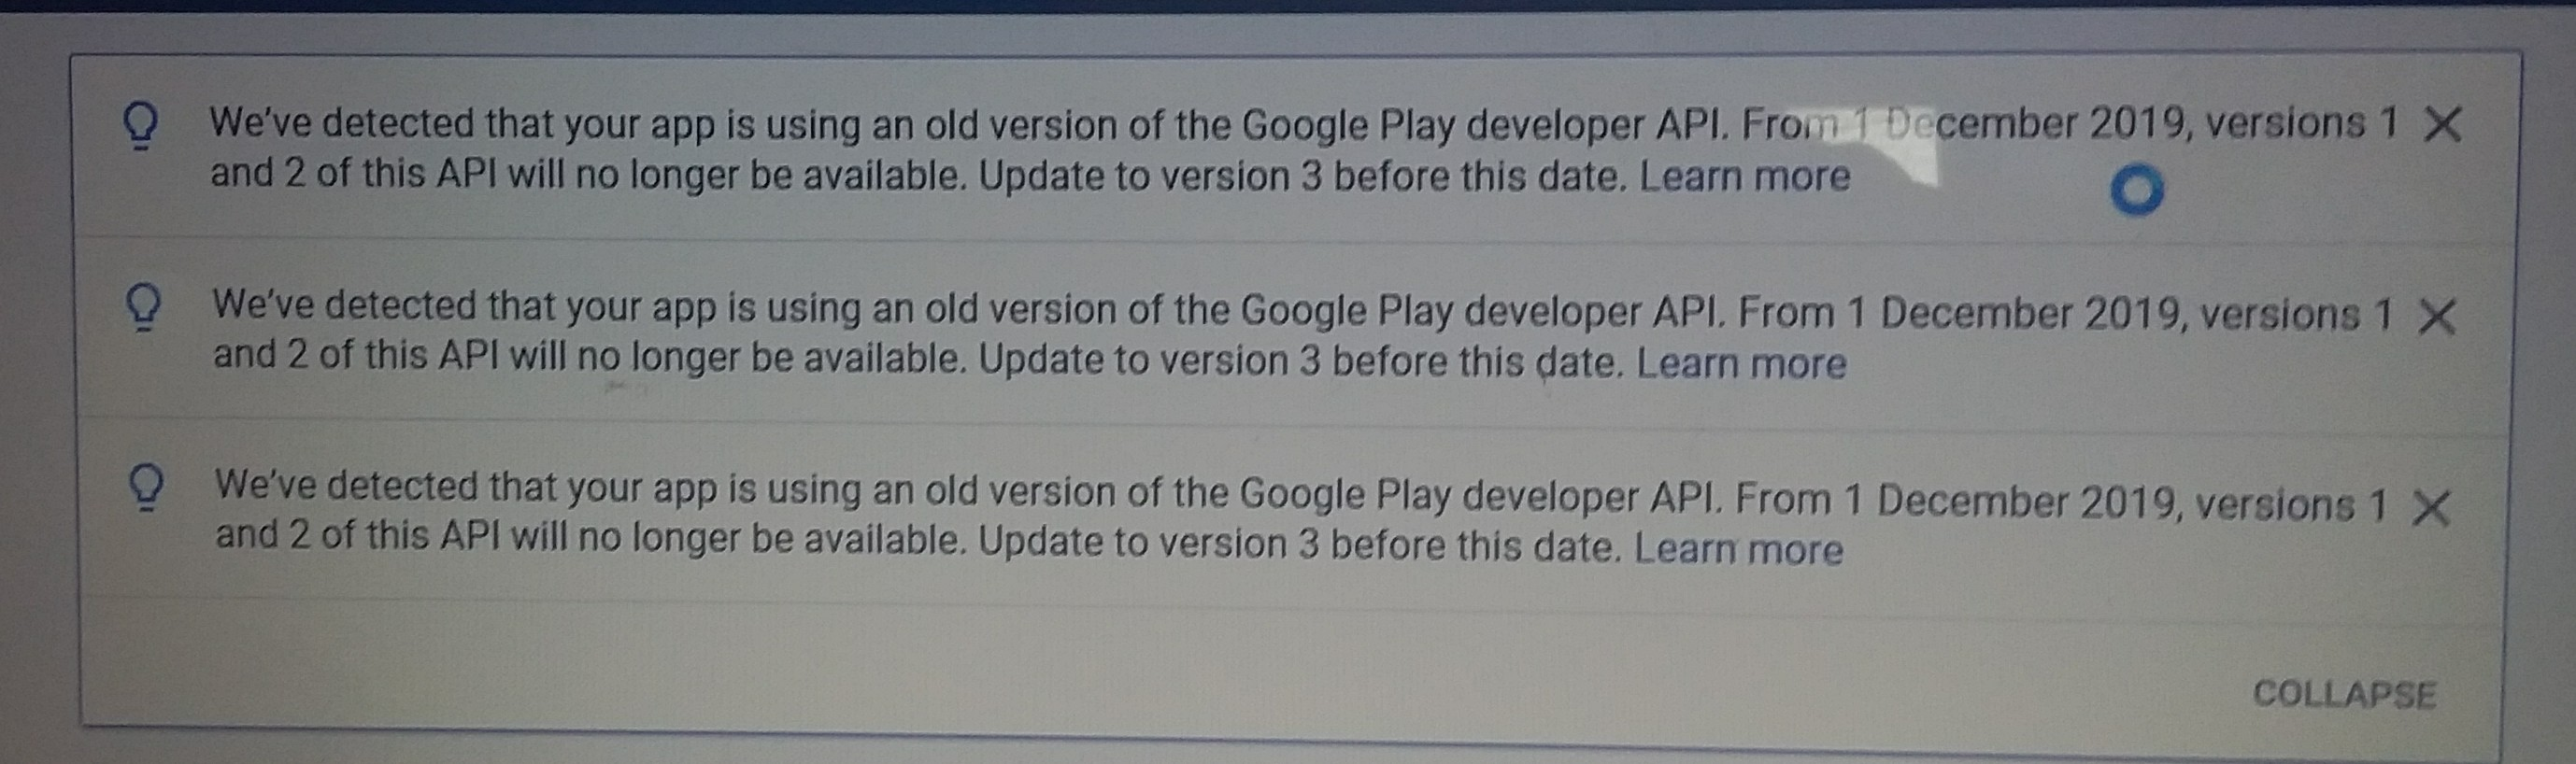 Outdated Google Play Developer API Version - Discuss